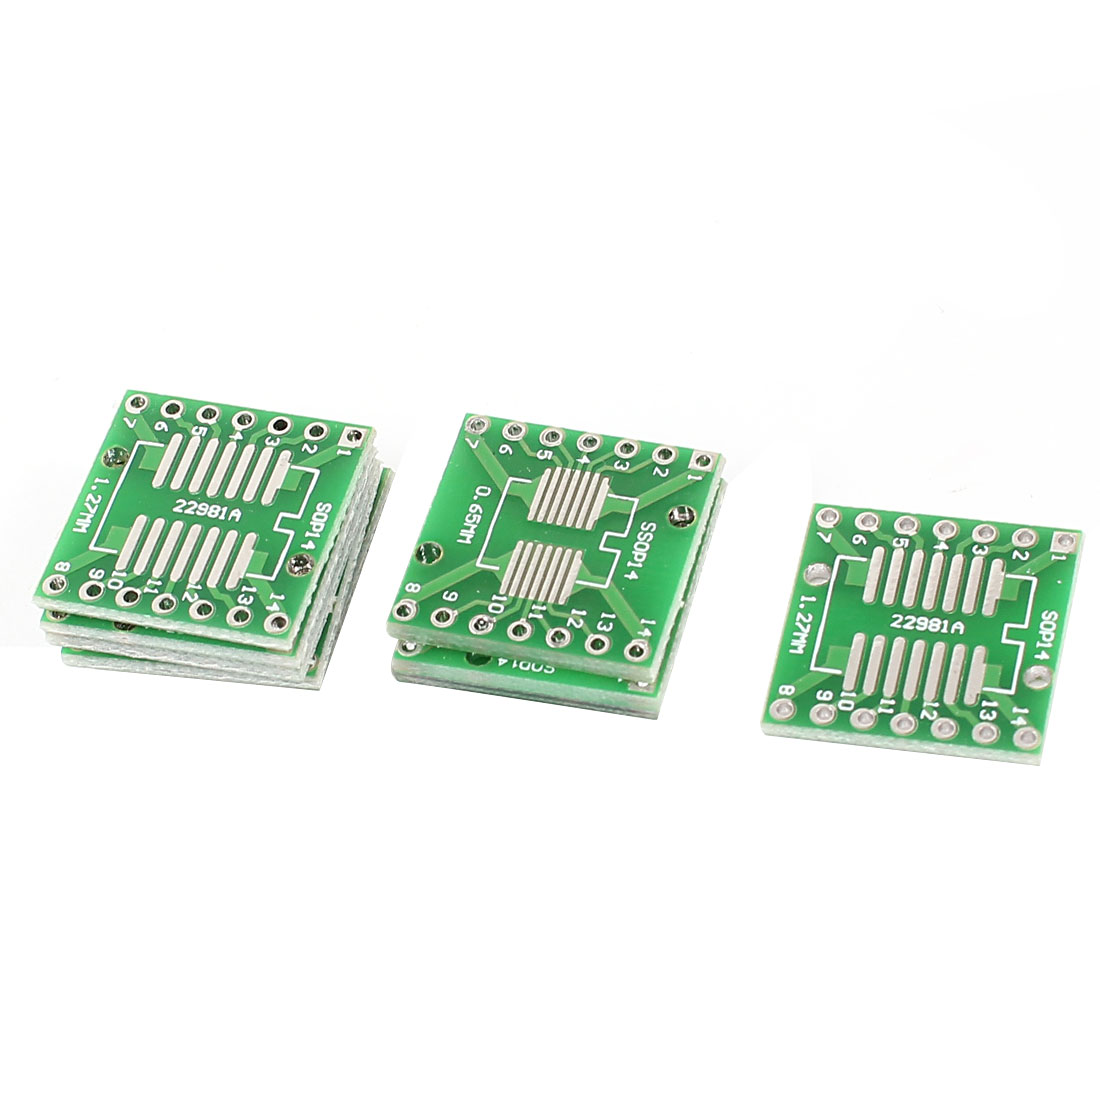 10 Pcs SMT SSOP14 0.65mm to SOP14 1.27mm Double Sides DIP PCB Adapter Converter Plate